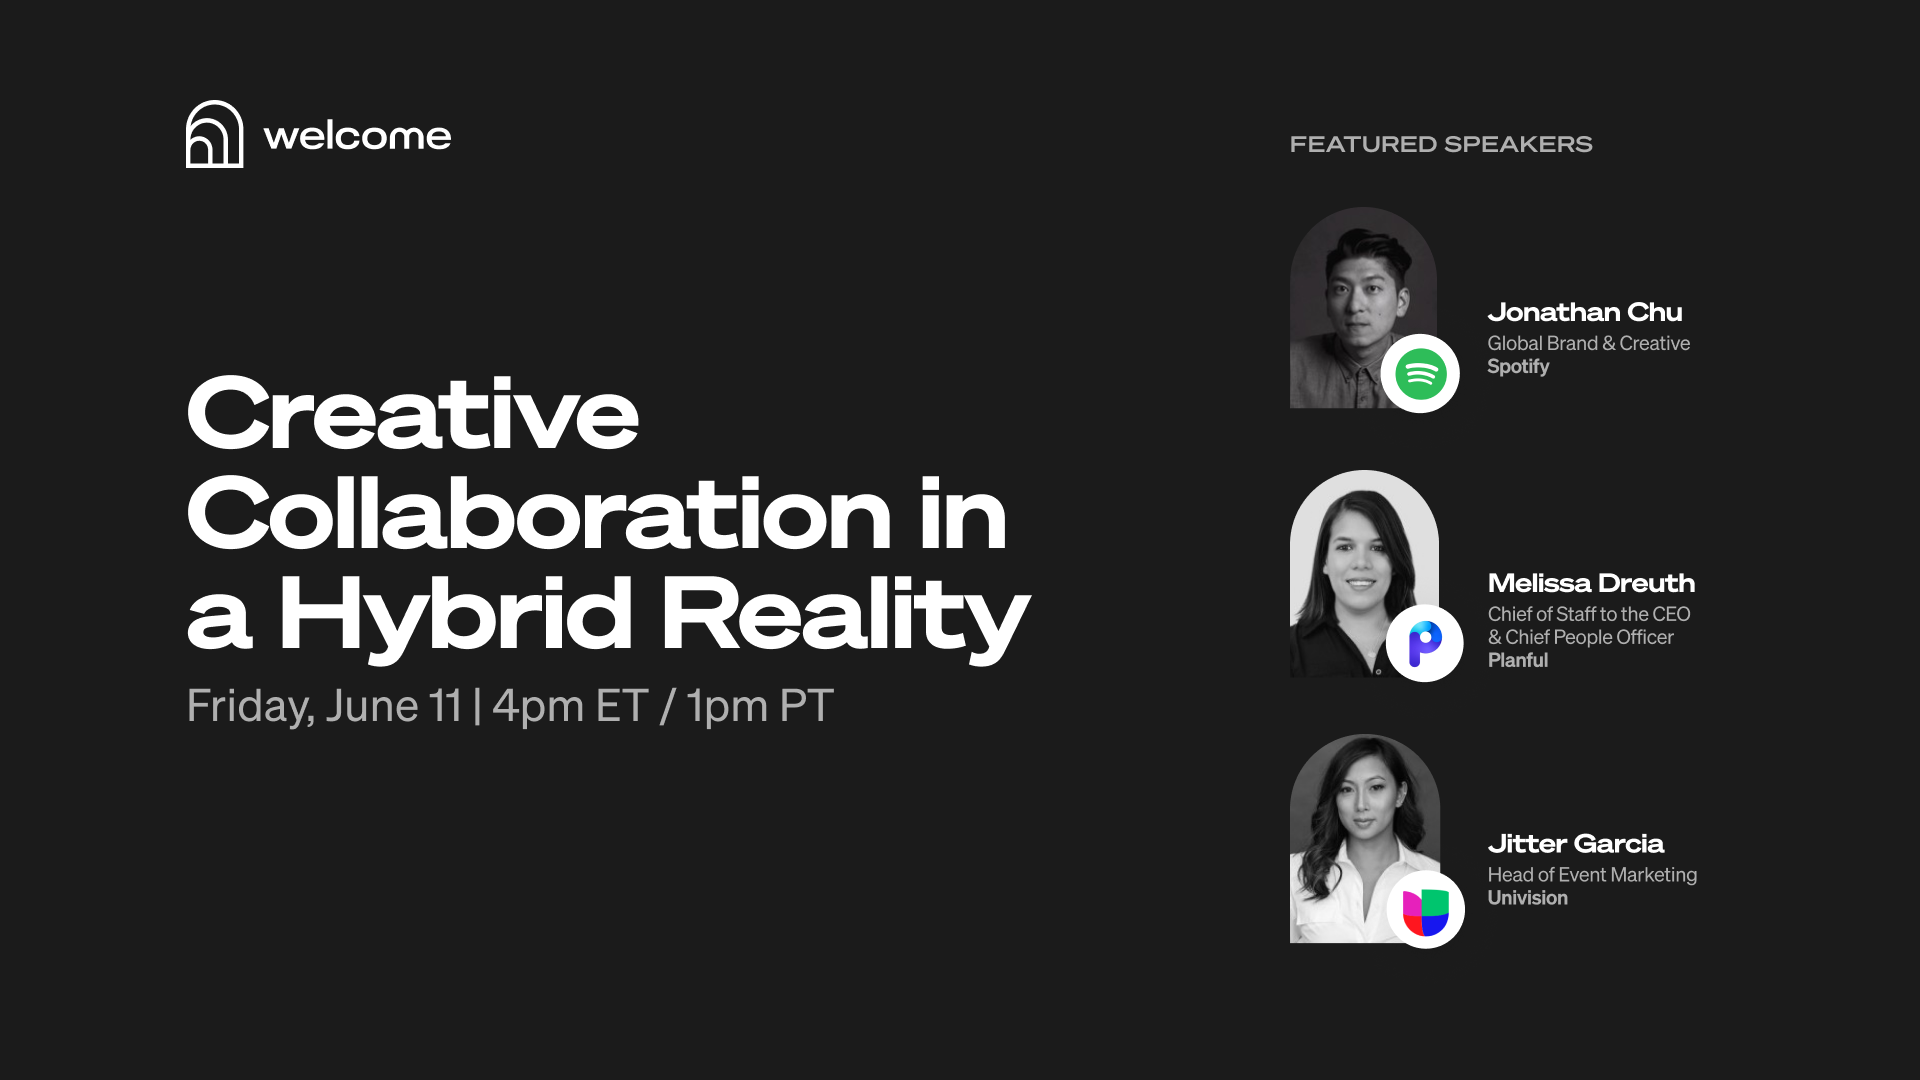 Creative Collaboration in a Hybrid Reality event information graphic